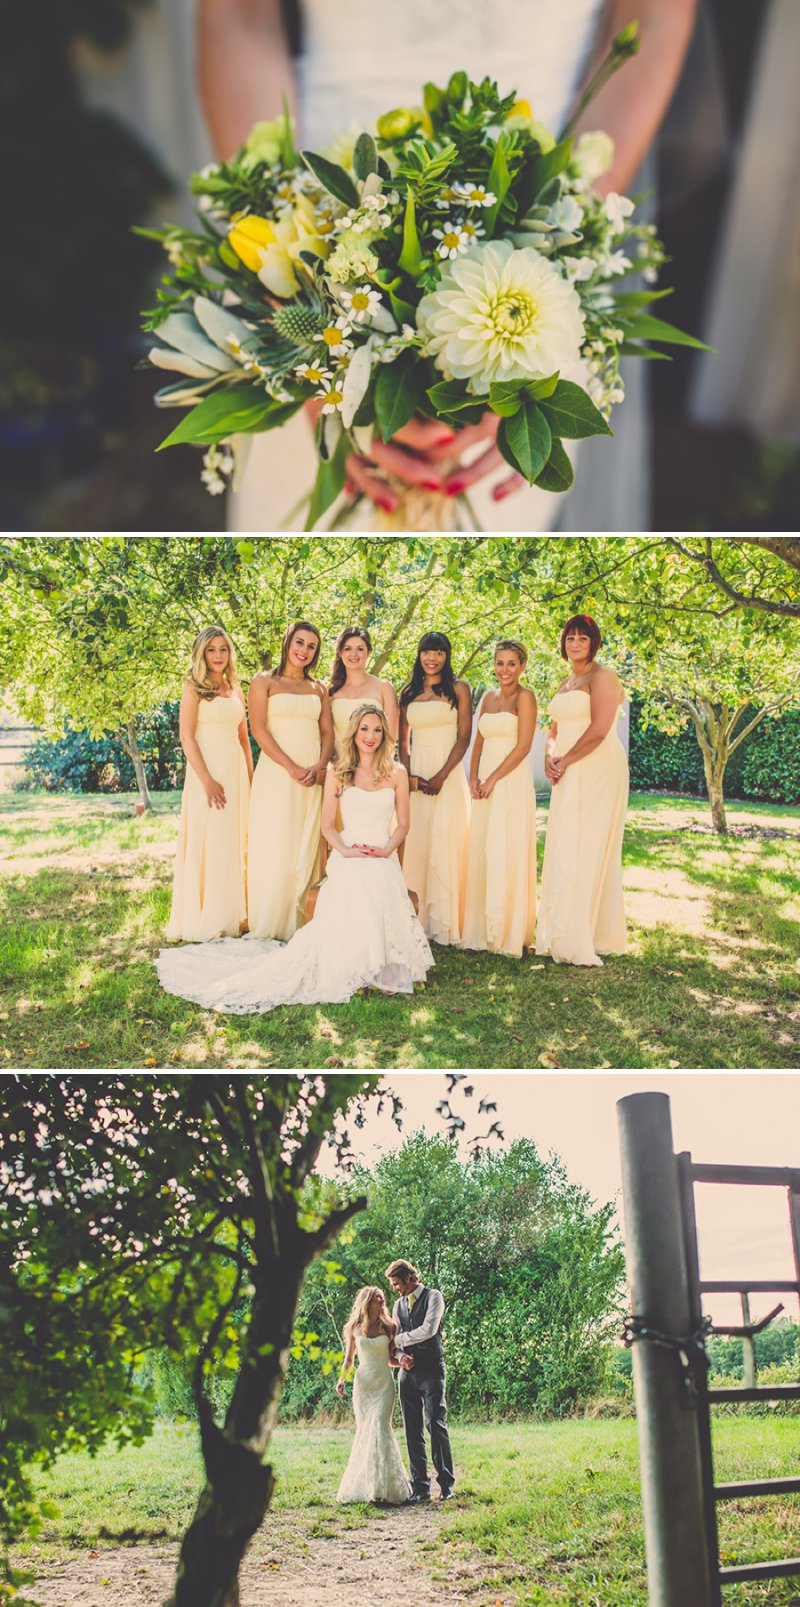 Pretty Back Garden Wedding In Hampshire With Bride In Blue By Enzoani Gown And Nude Carvela Shoes With Wild Daisies And Bridesmaids In Pale Yellow Gowns And Groom In Grey 1